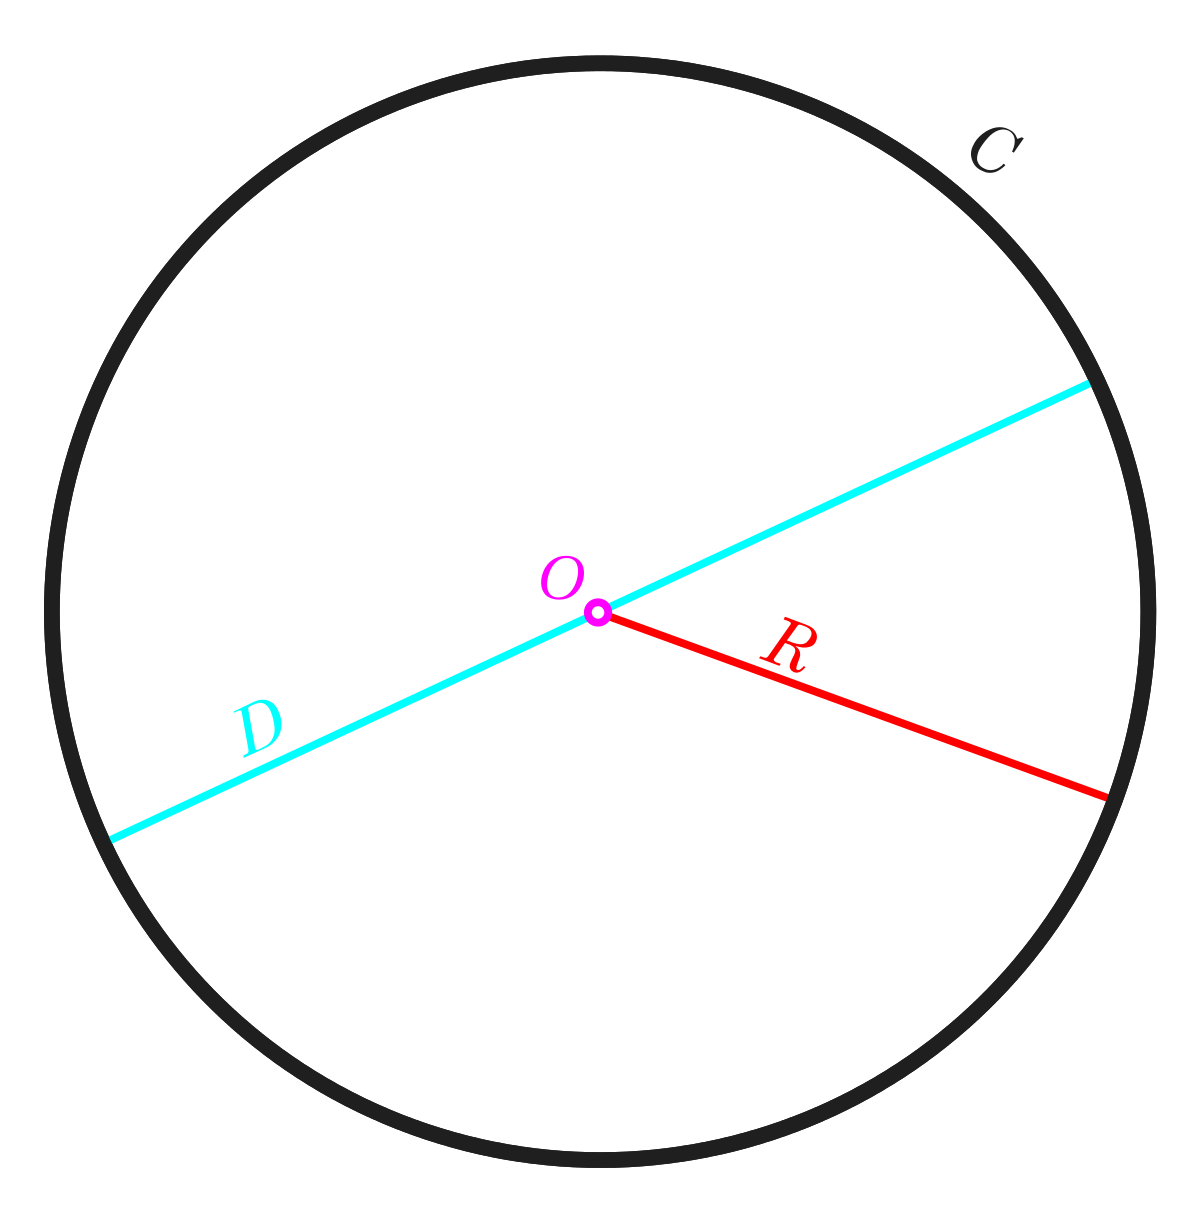 Drawing radius diameter. Wikipedia